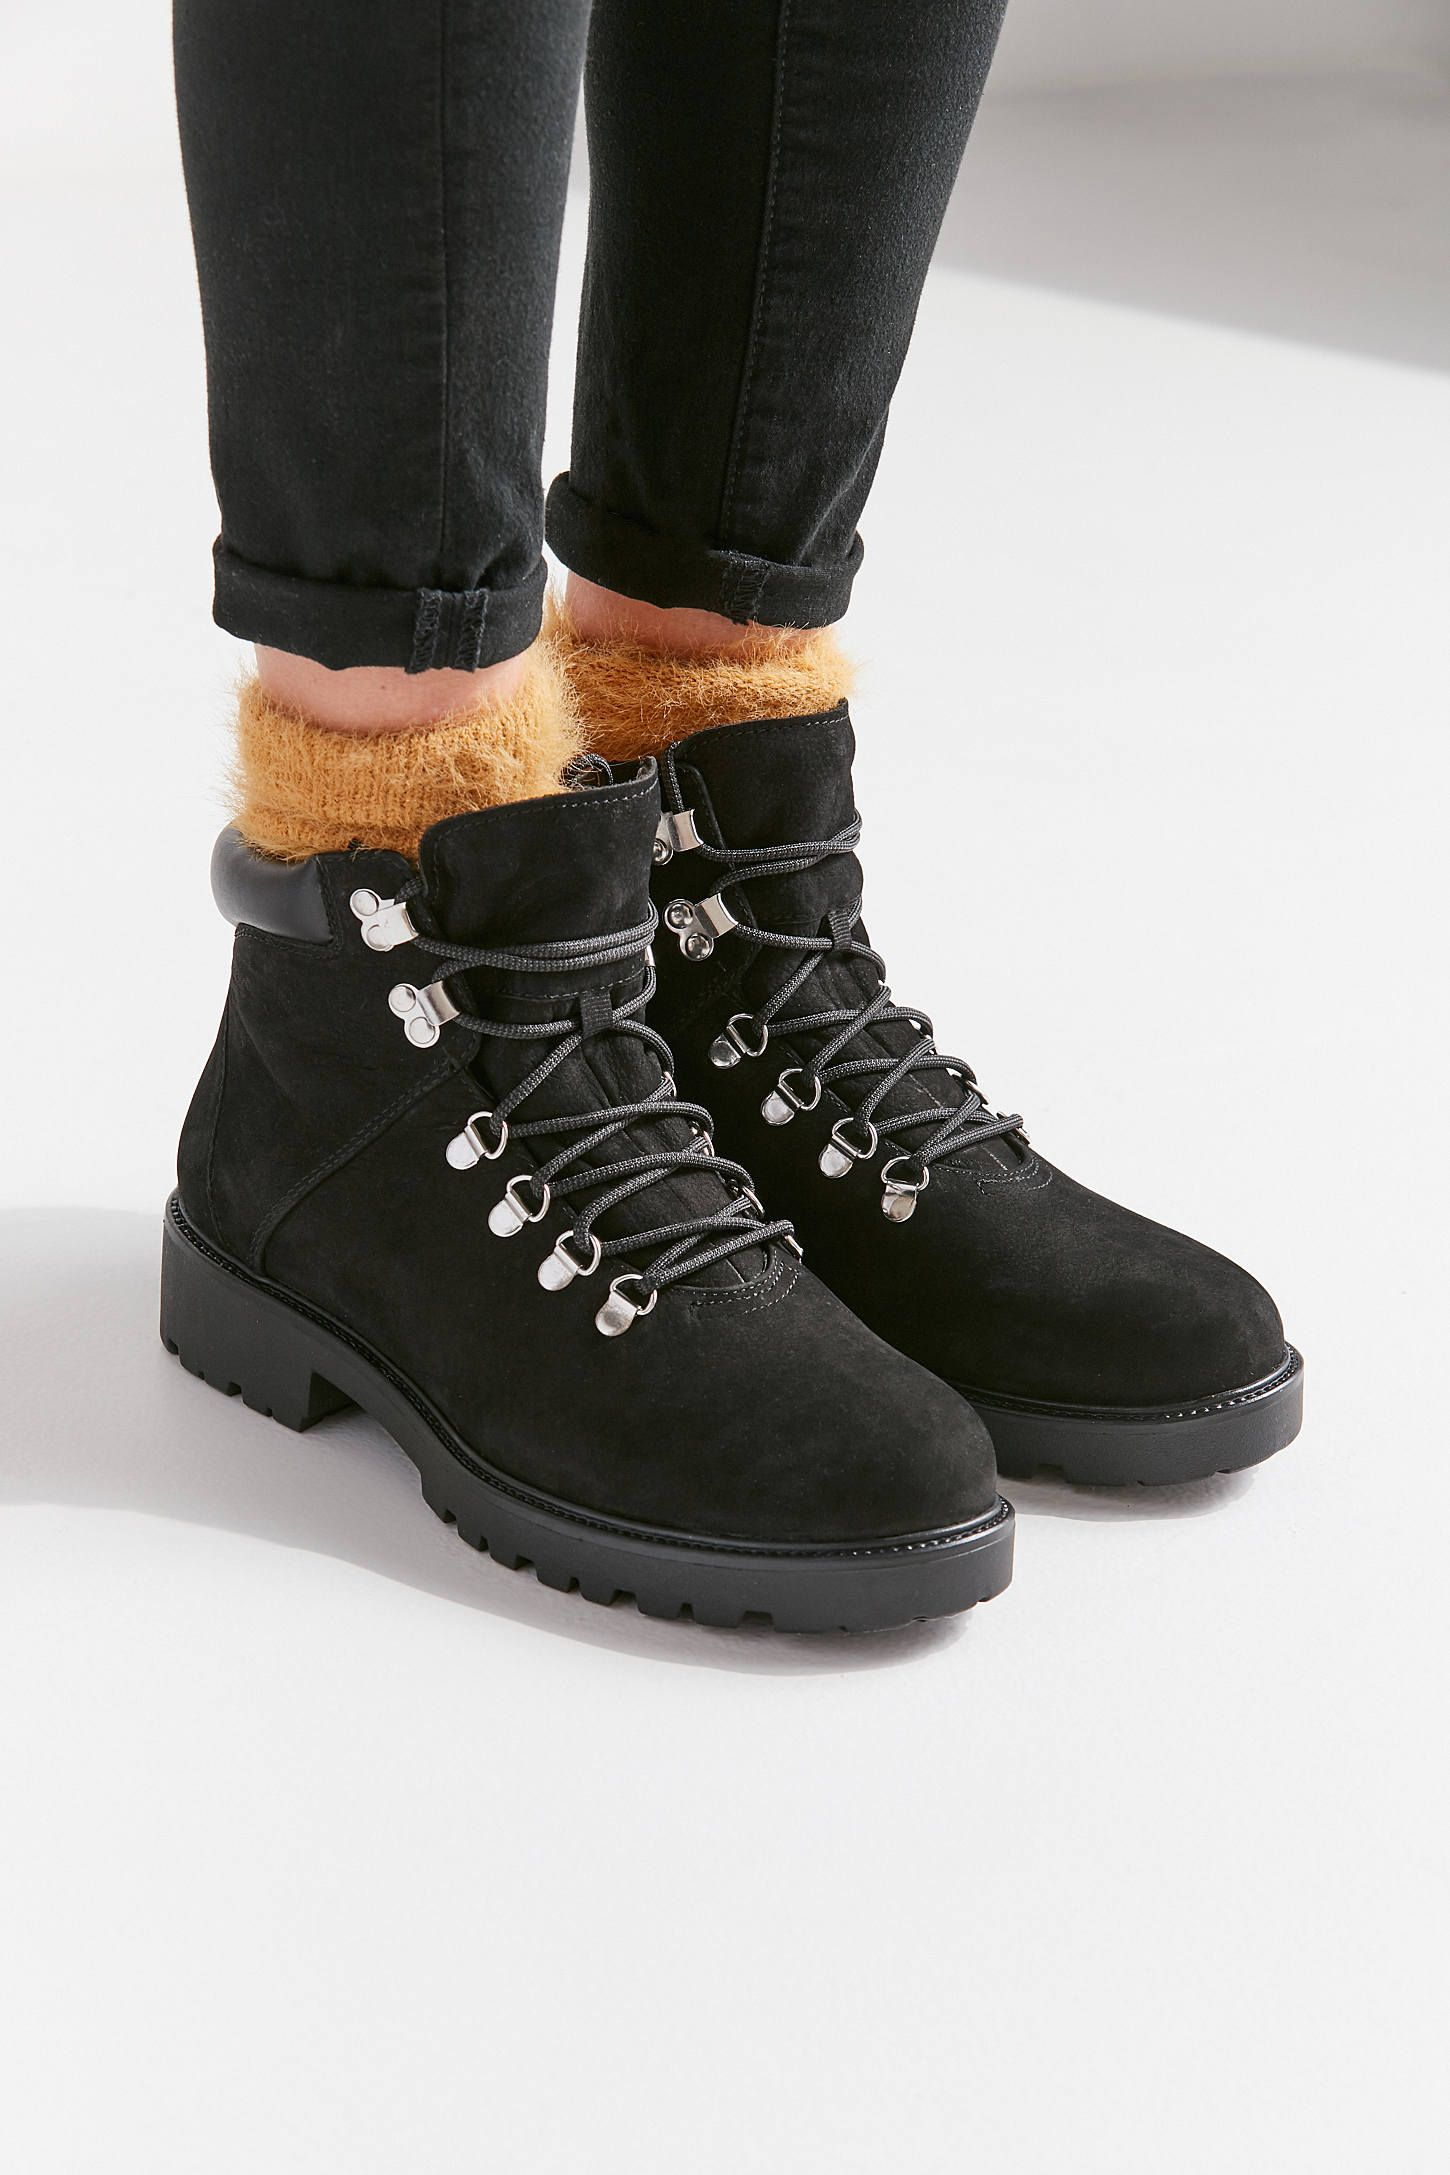 9eafc8981d Vagabond Shoemakers Kenova Hiker Boot in 2019